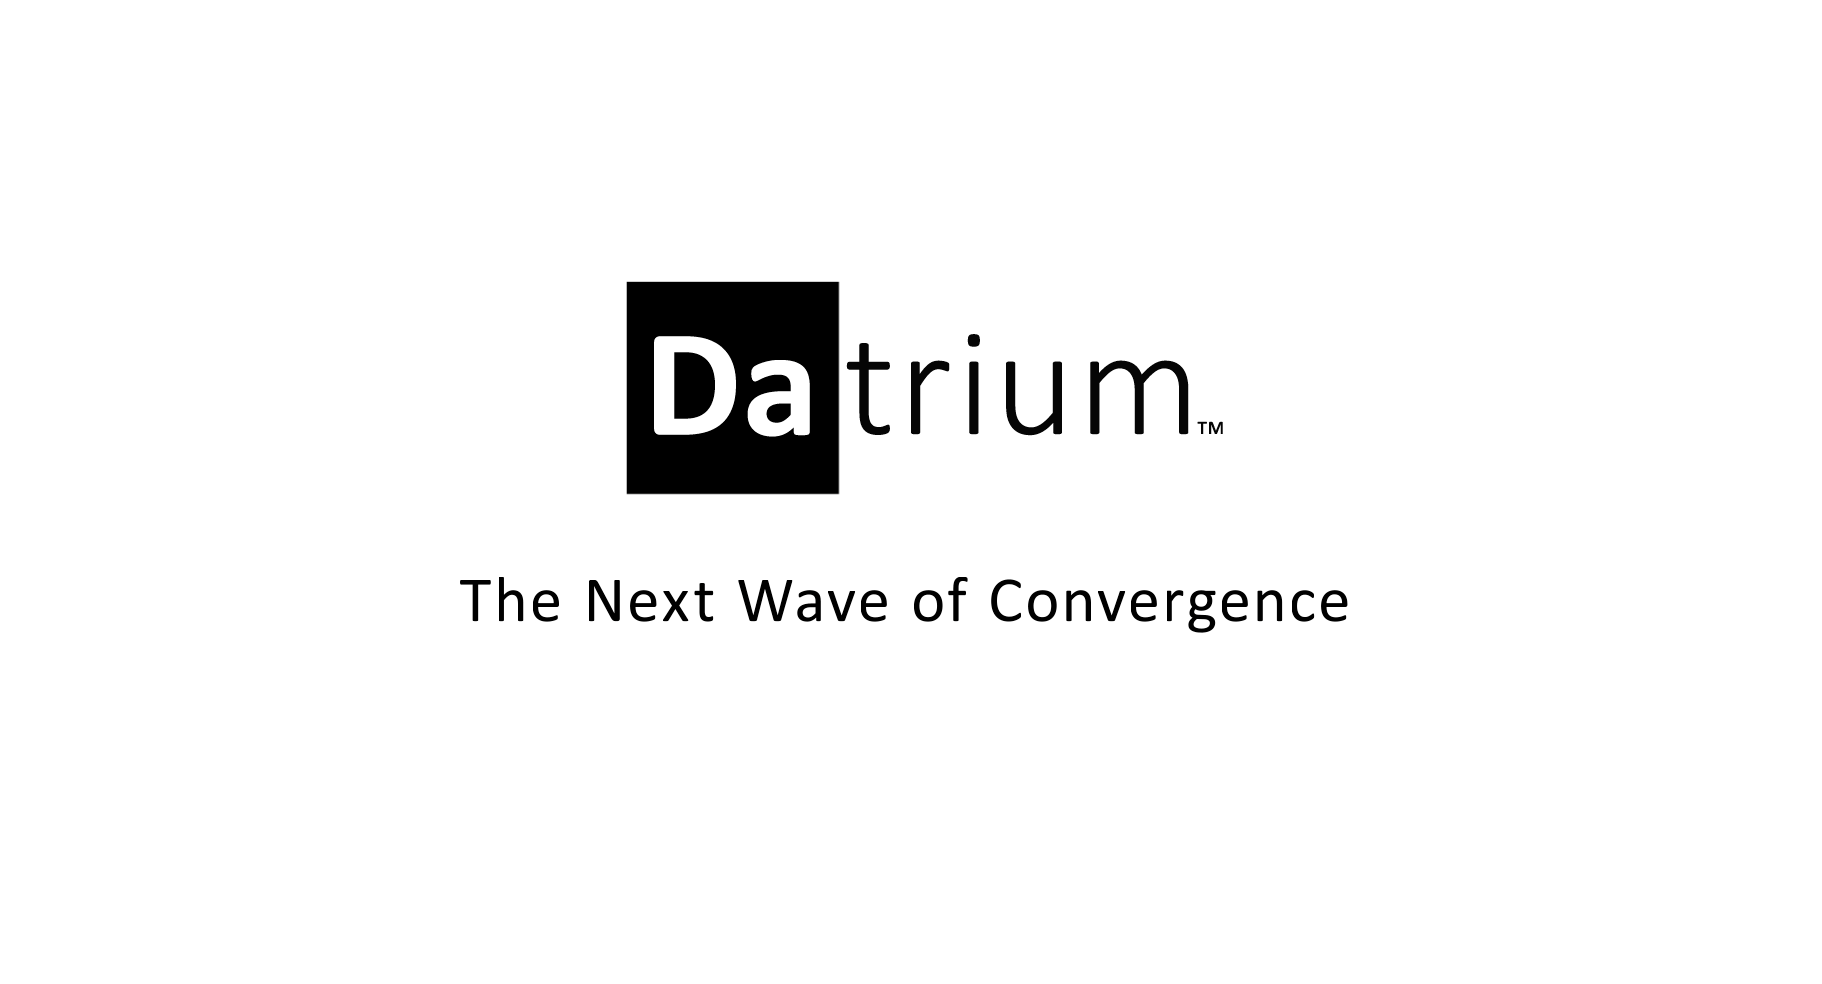 Datrium in 2 Minutes: The Next Wave of Convergence